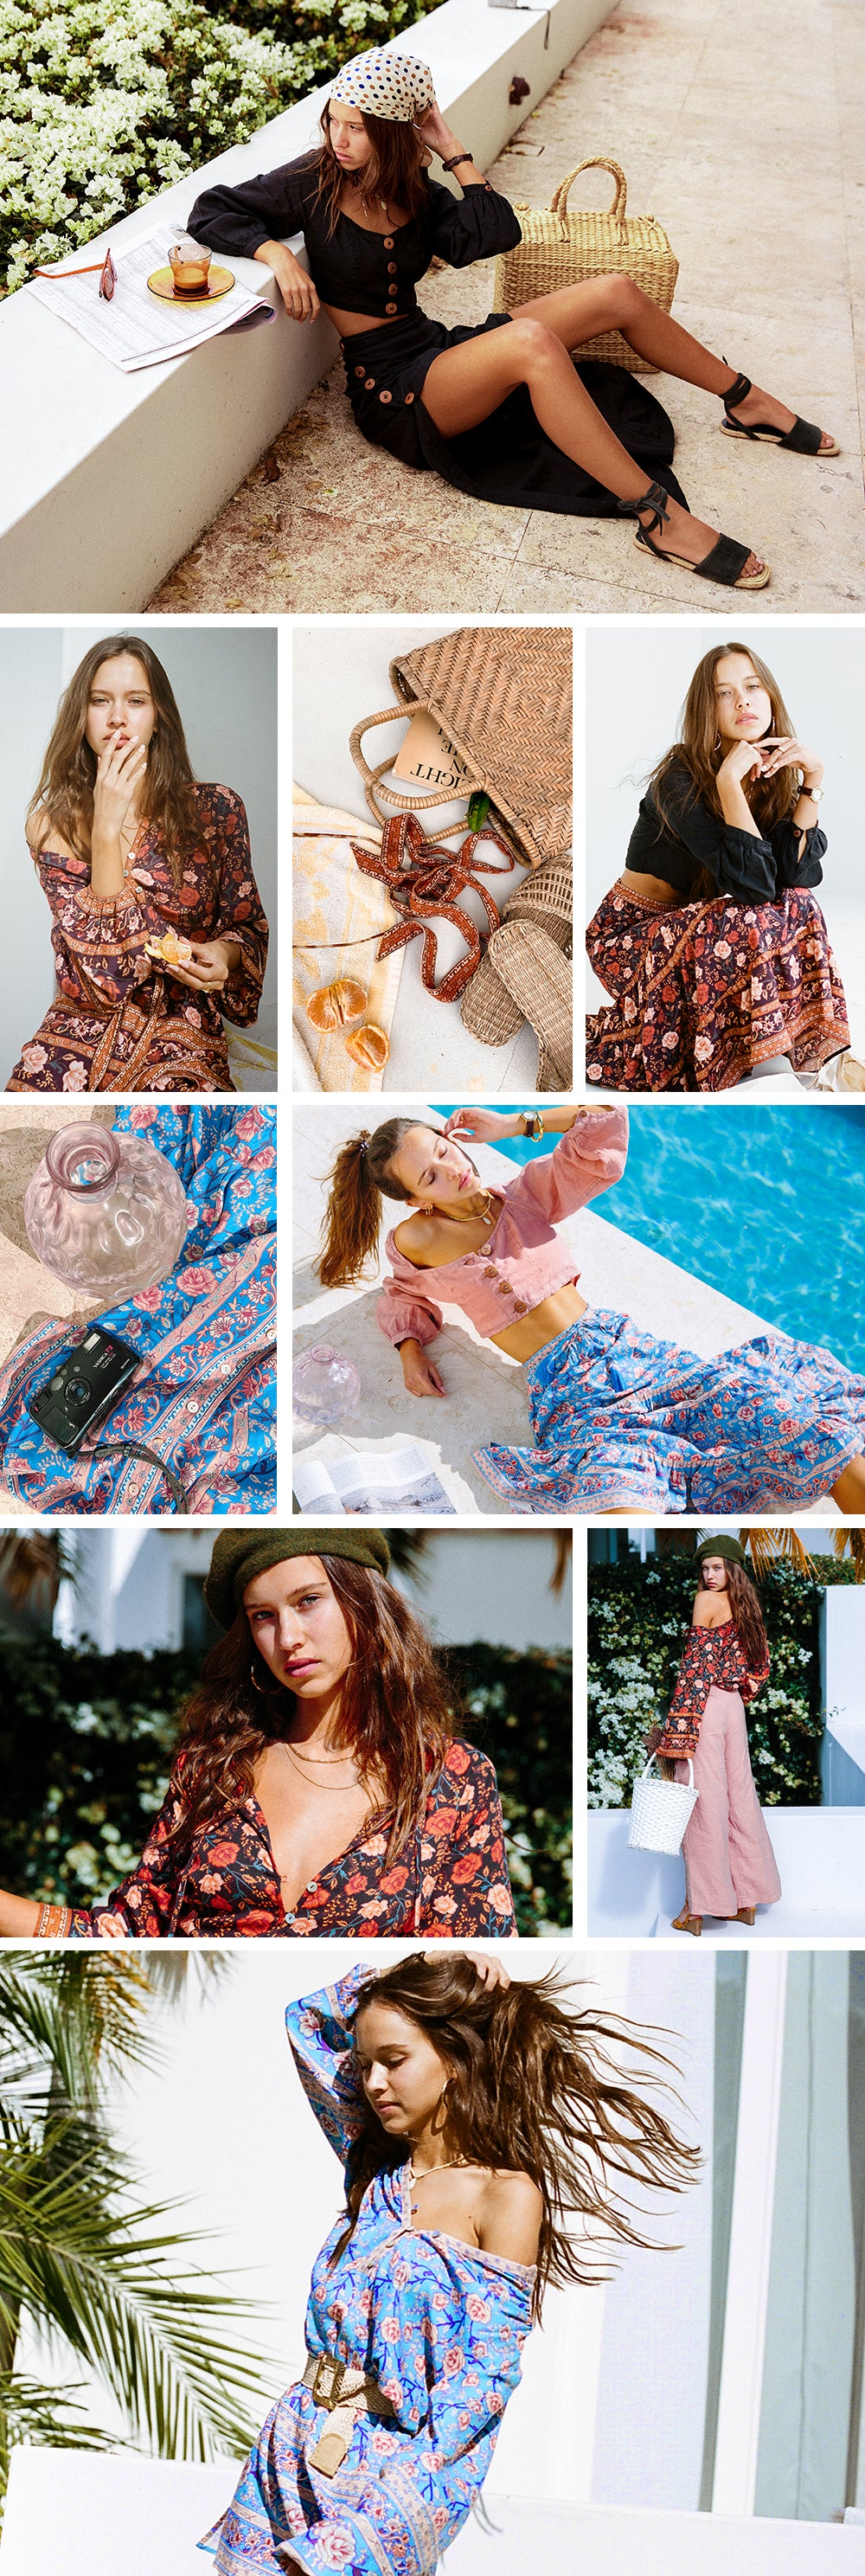 The new Serendipity Collection from Arnhem Clothing Byron Bay beautiful floral bohemian silhouettes